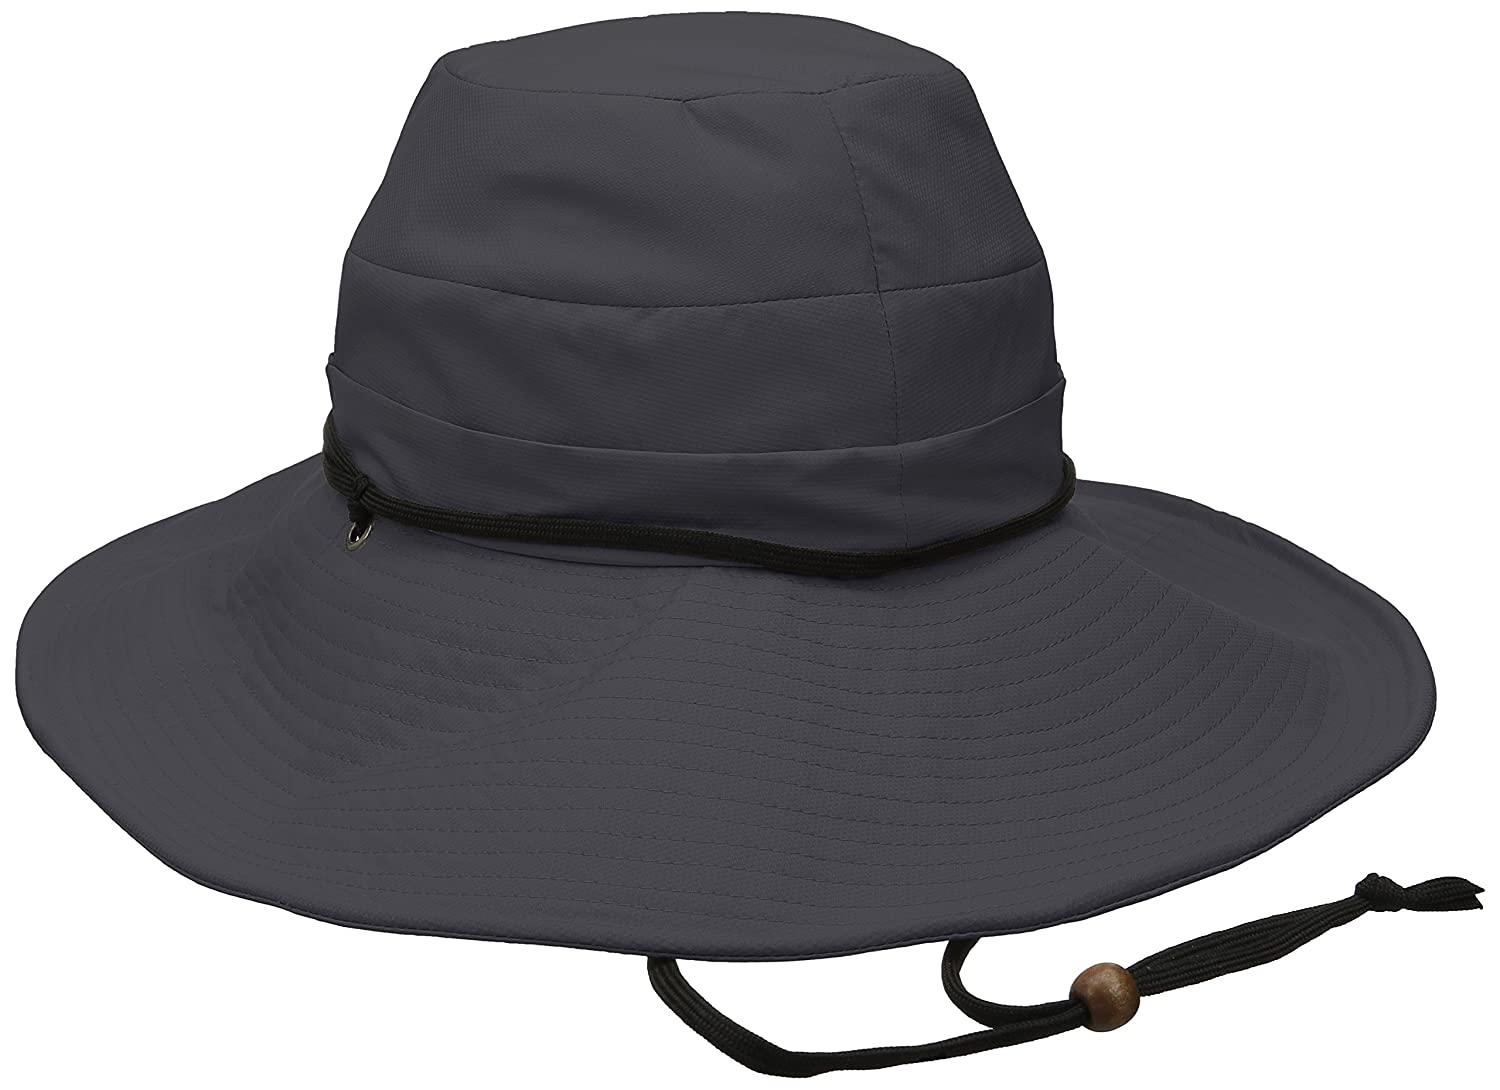 63659c76e8a San Diego Hat Company Women s Active Wired Sun Brim Hat with Moisture  Wicking Sweatband